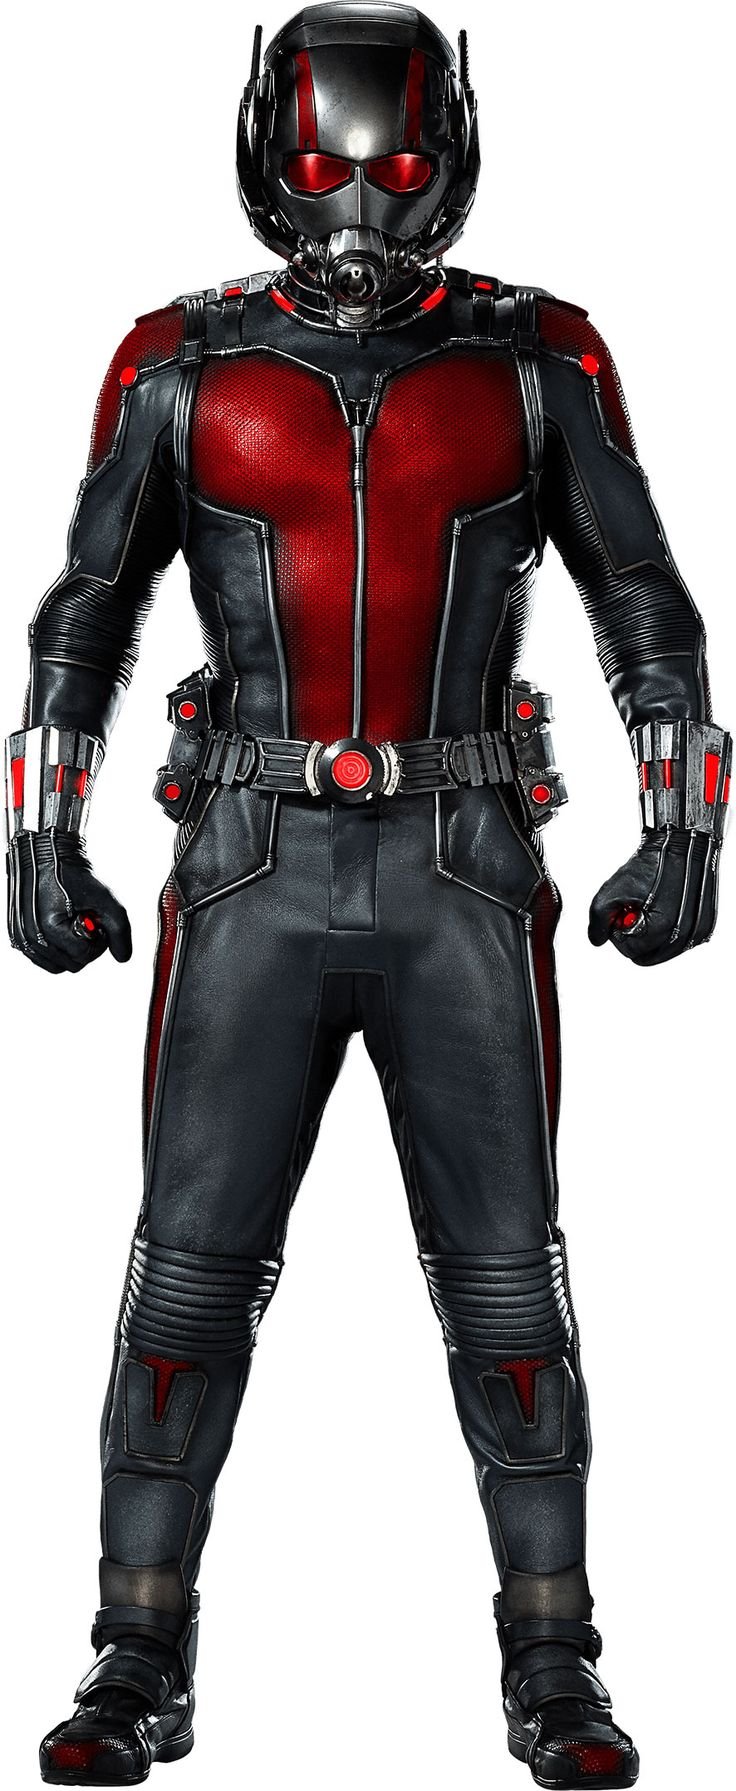 Closer Look At ANT-MAN Suit Revealed With Intriguing New 'Pym Particles' Details